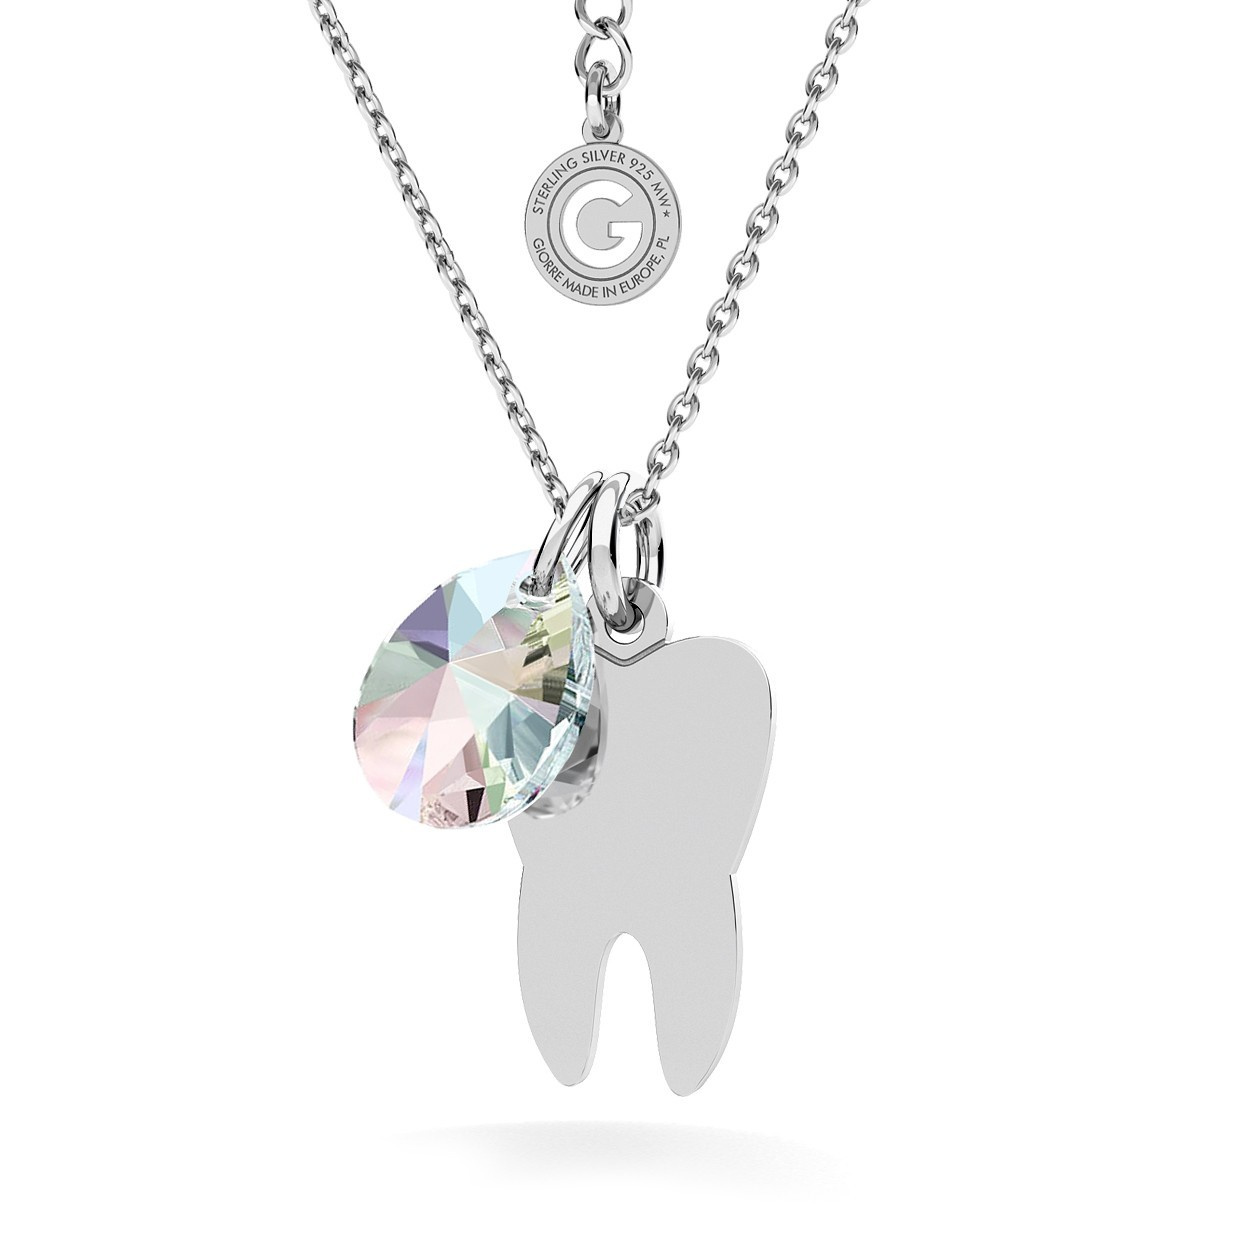 TOOTH NECKLACE, ENGRAVED AND SWAROVSKI CRYSTAL